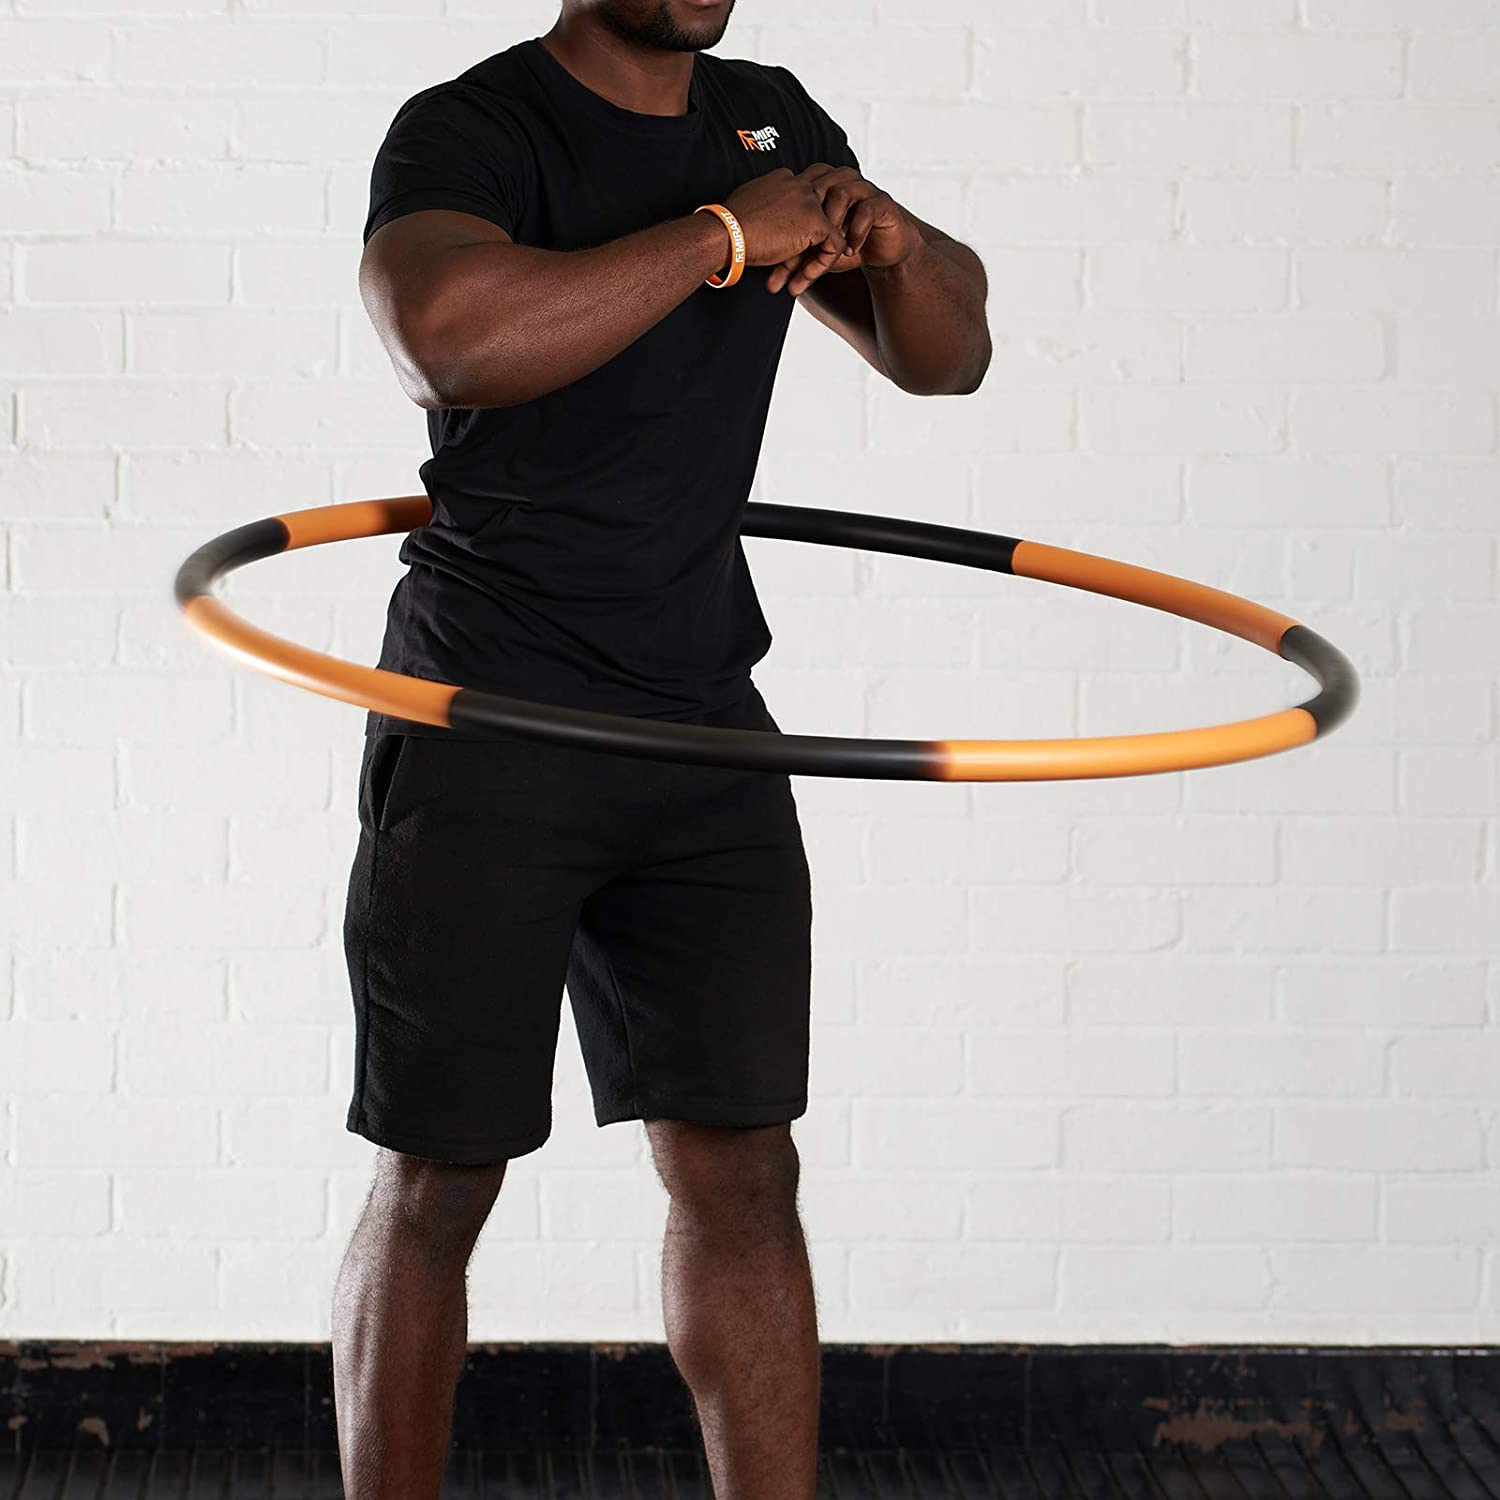 Choice of Colour Mirafit Smooth Weighted Hula Hoop